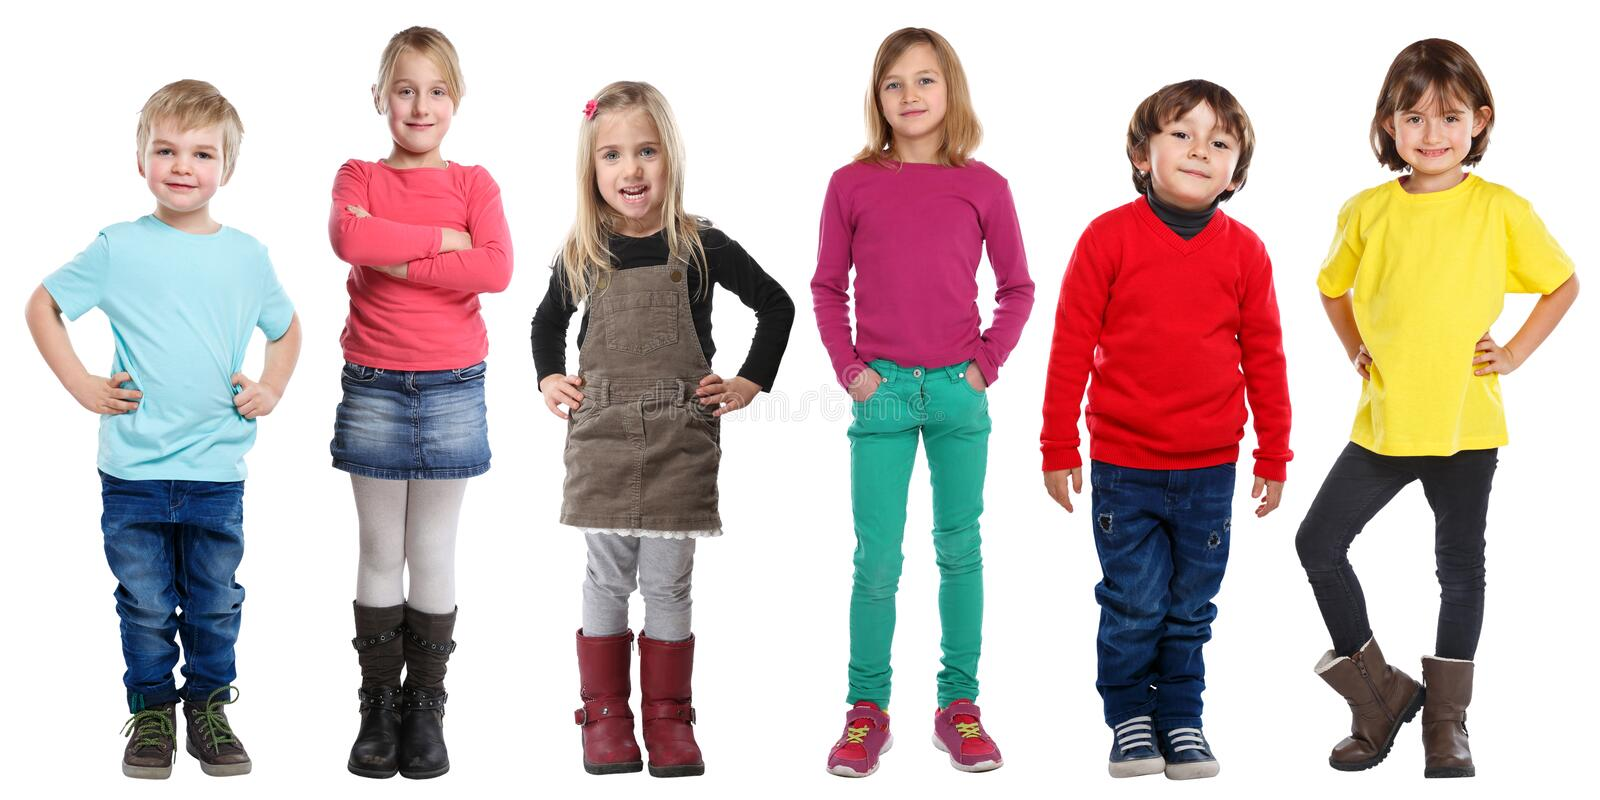 Group of kids children little boys girls full body portrait isolated on white. Group of kids children little boys girls full body portrait isolated on a white stock photos